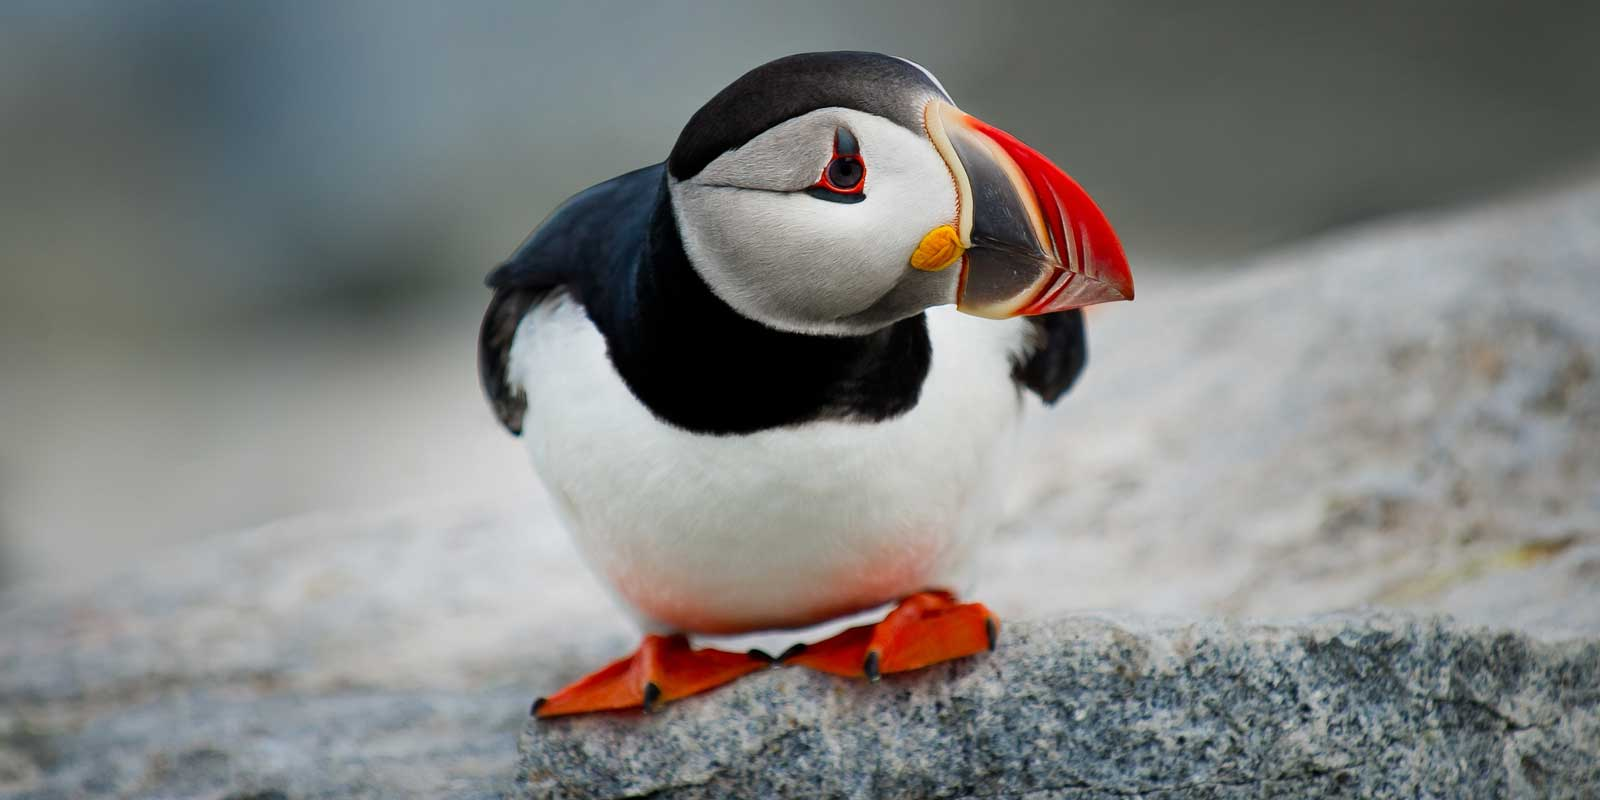 Close up shot of a puffin crouching on a rock.